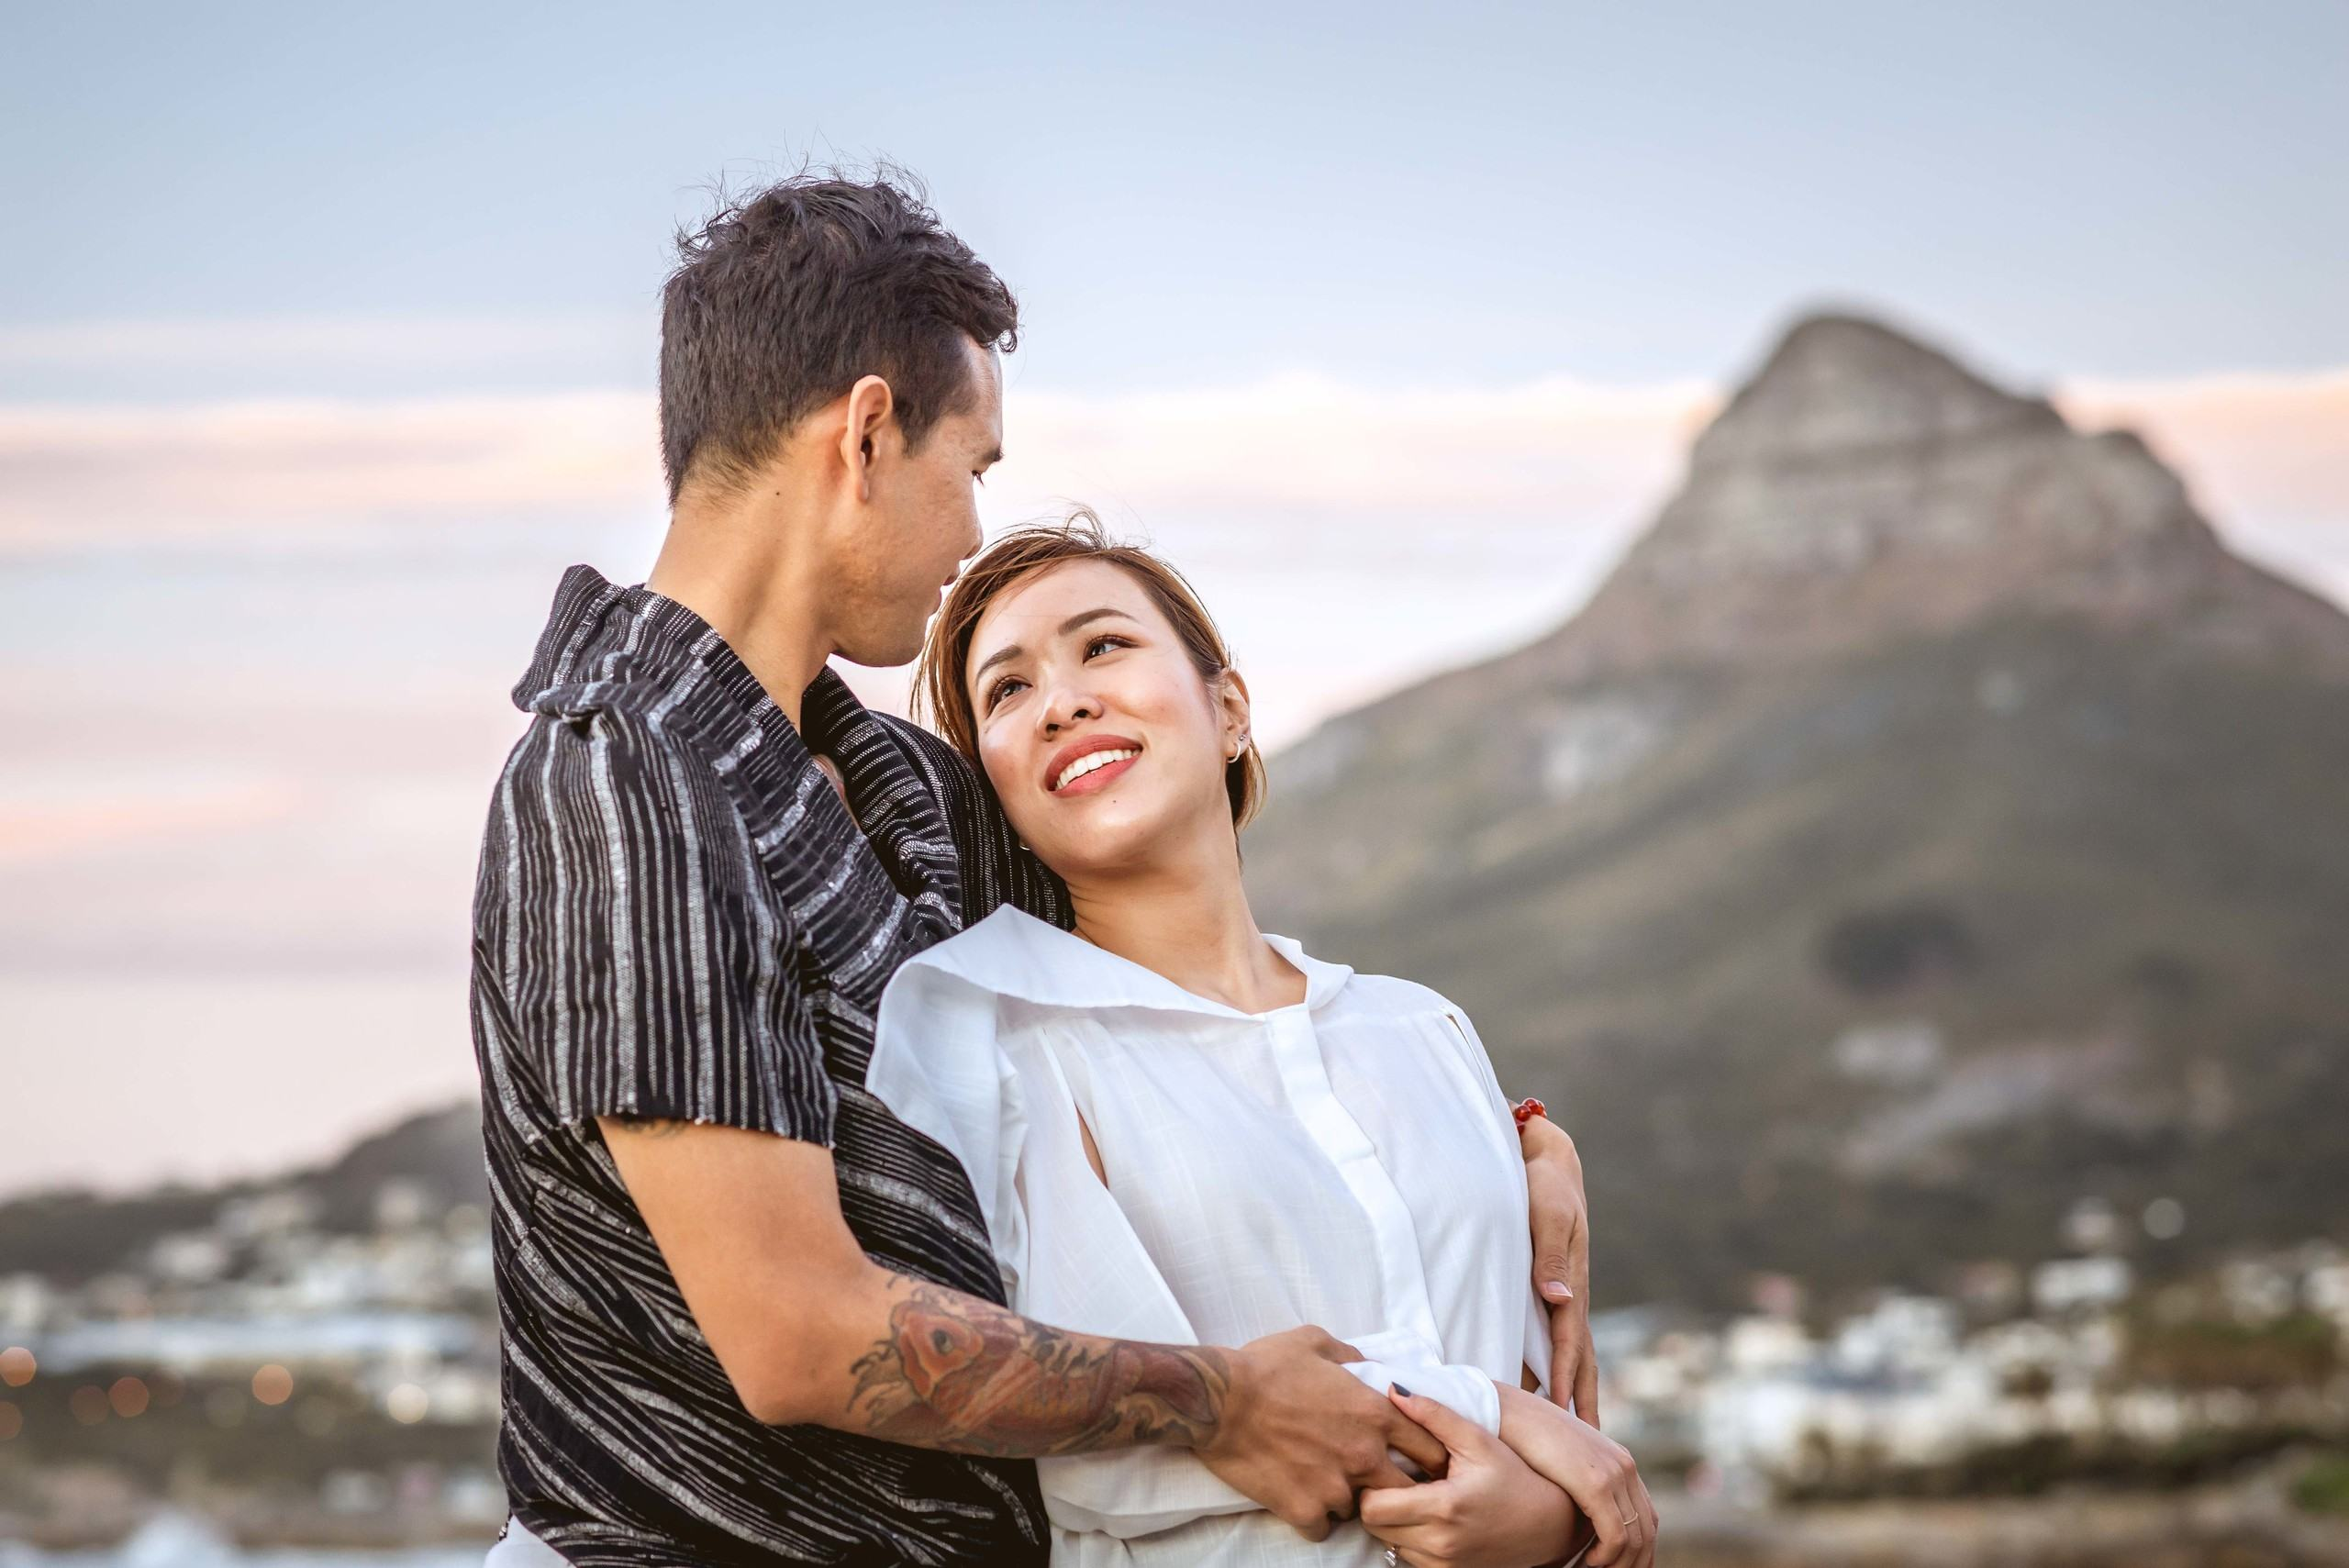 Cape Town couple Vacation photo shoot